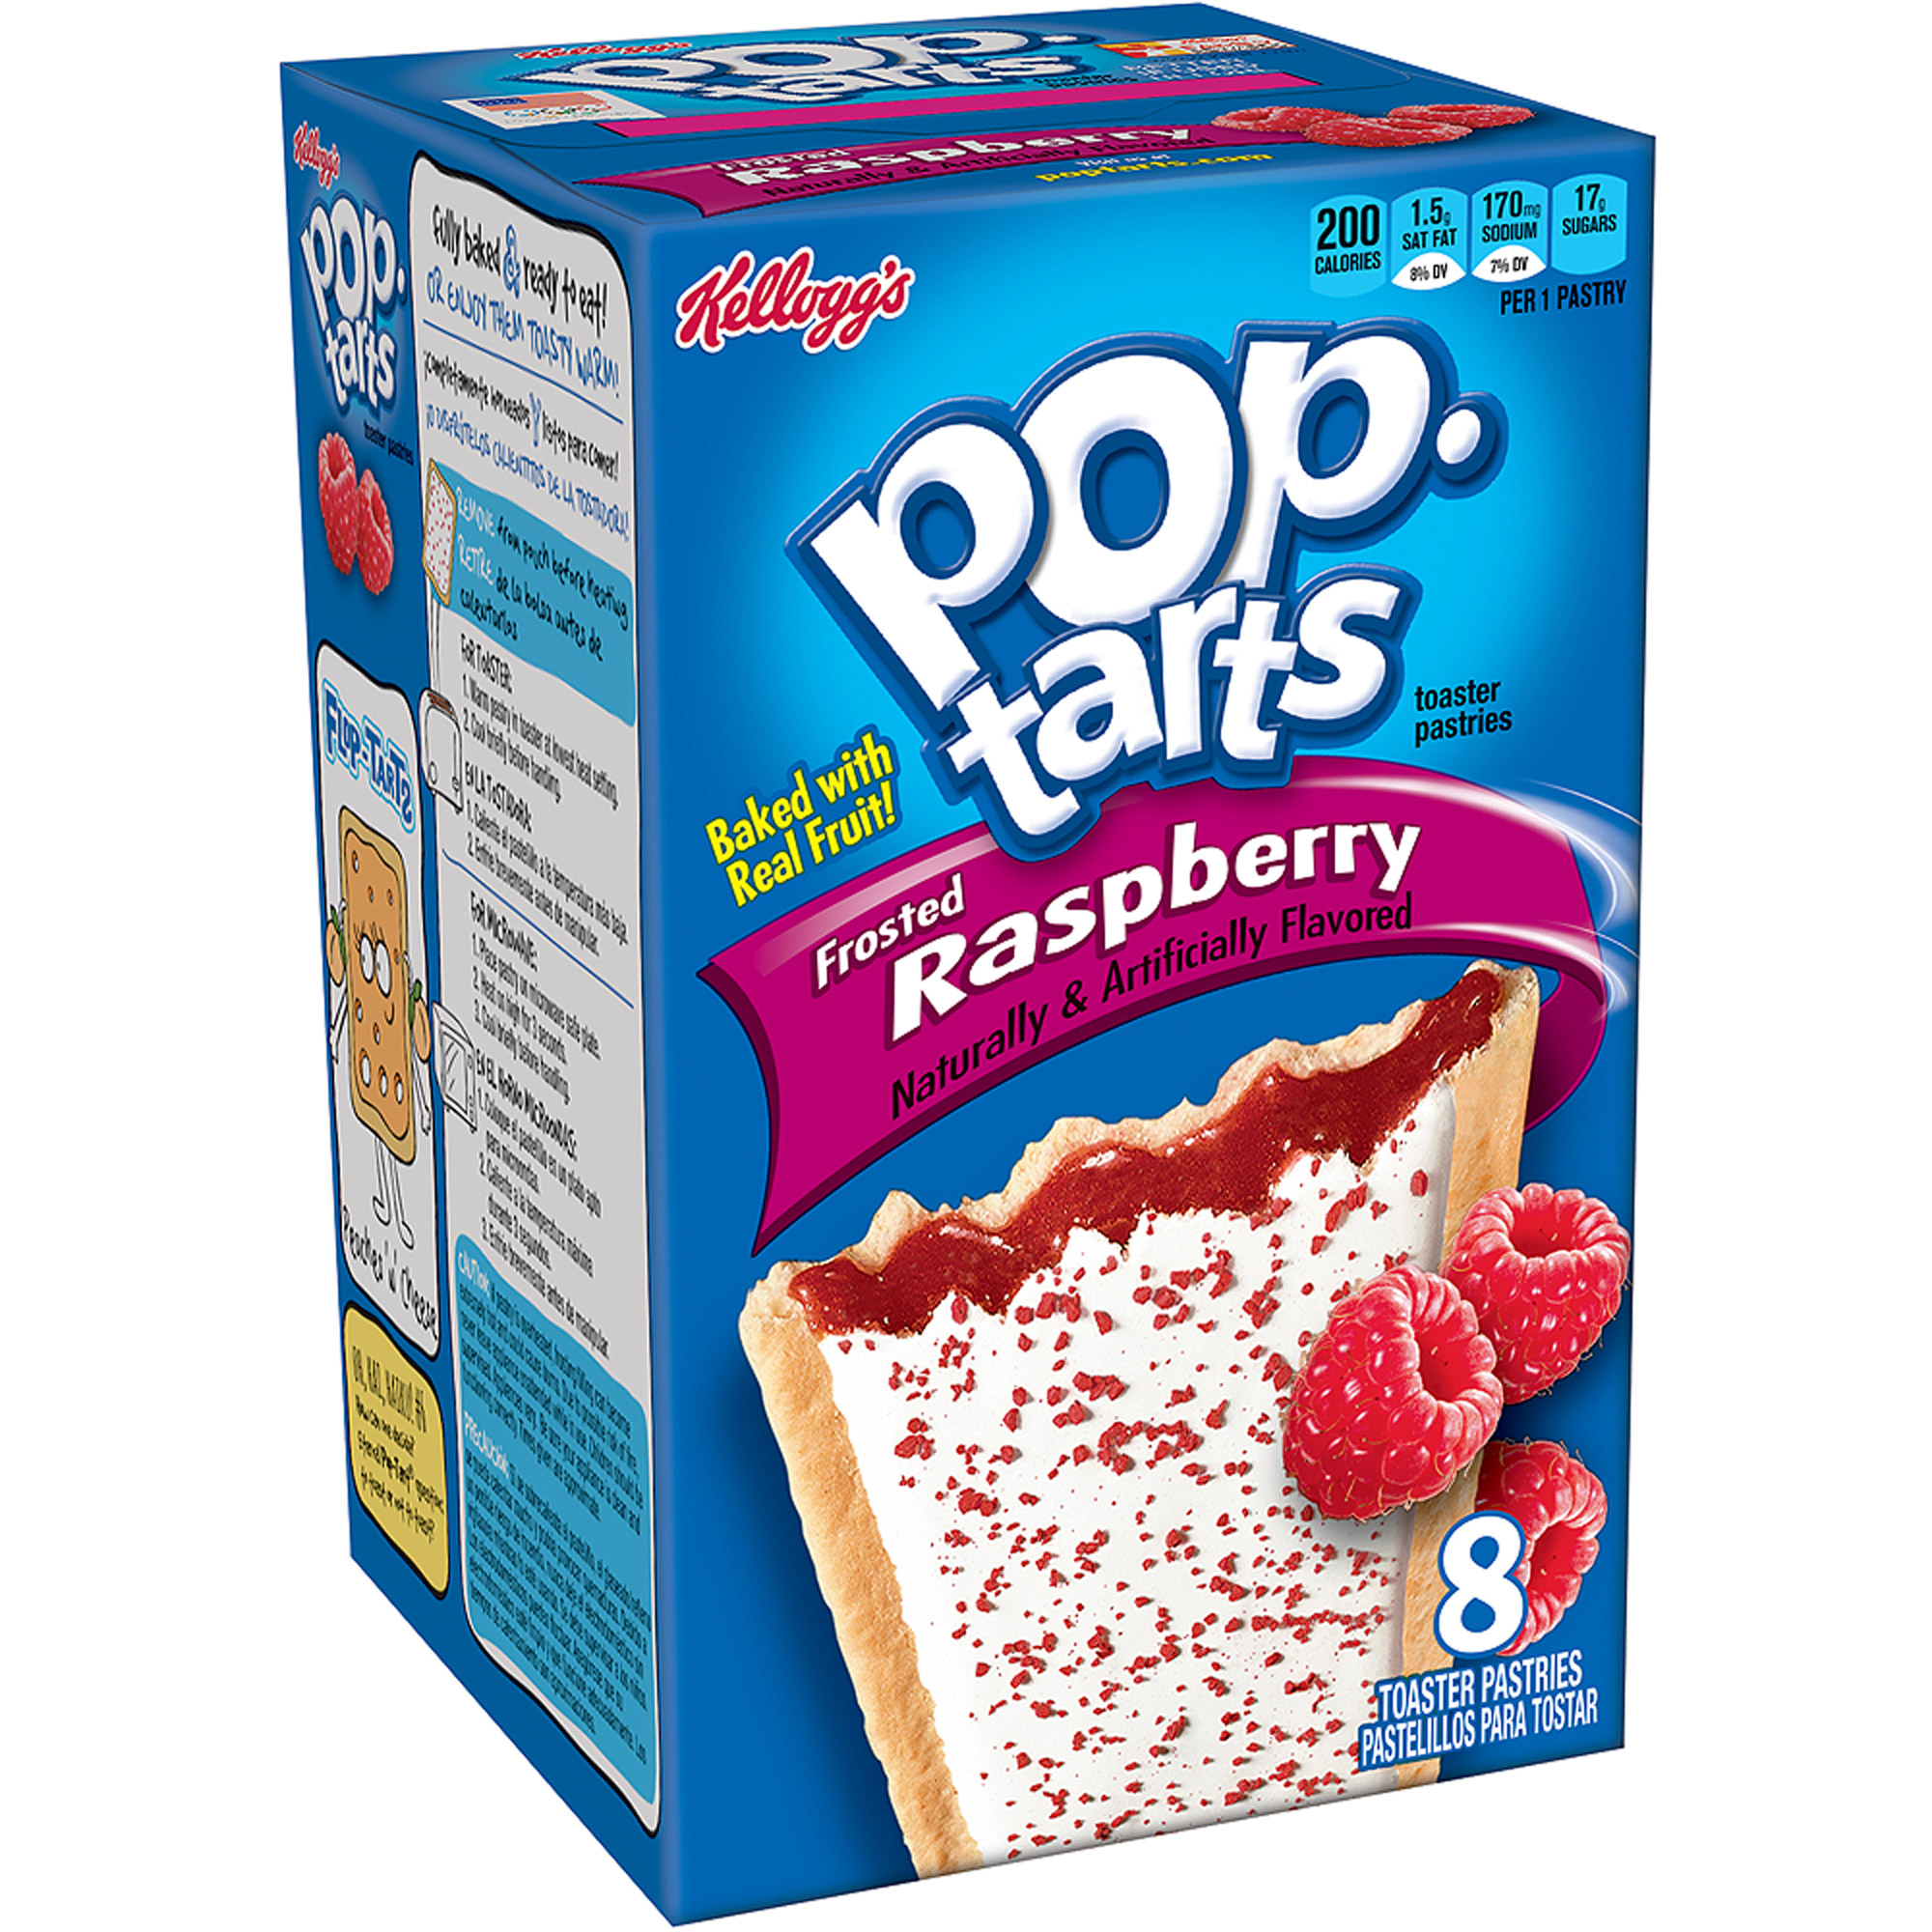 Kellogg's Pop Tarts Frosted Raspberry Toaster Pastries, 8 ct (12 Pack) by Kellogg Sales Co.